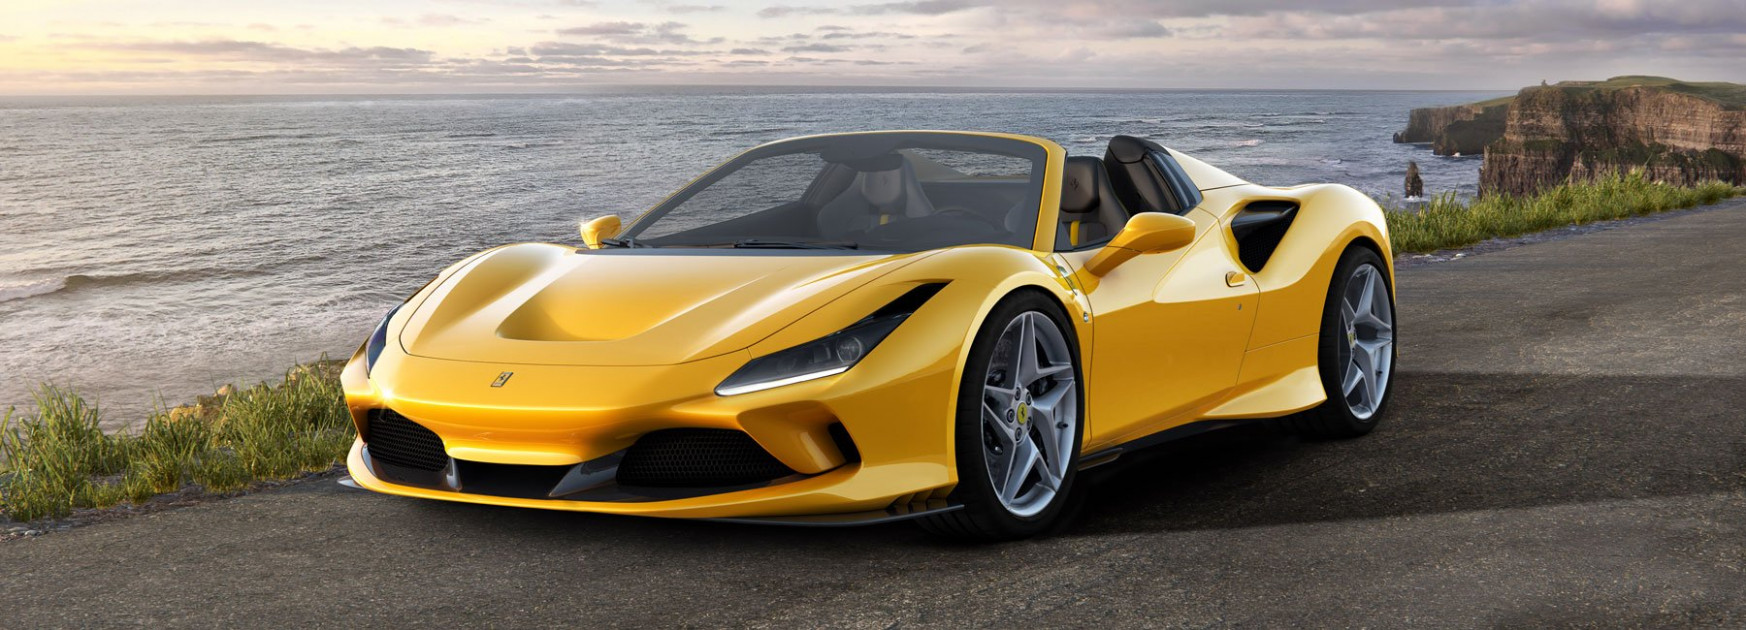 ferrari reveals 8 f8 spider with more power and less weight - 2020 ferrari types